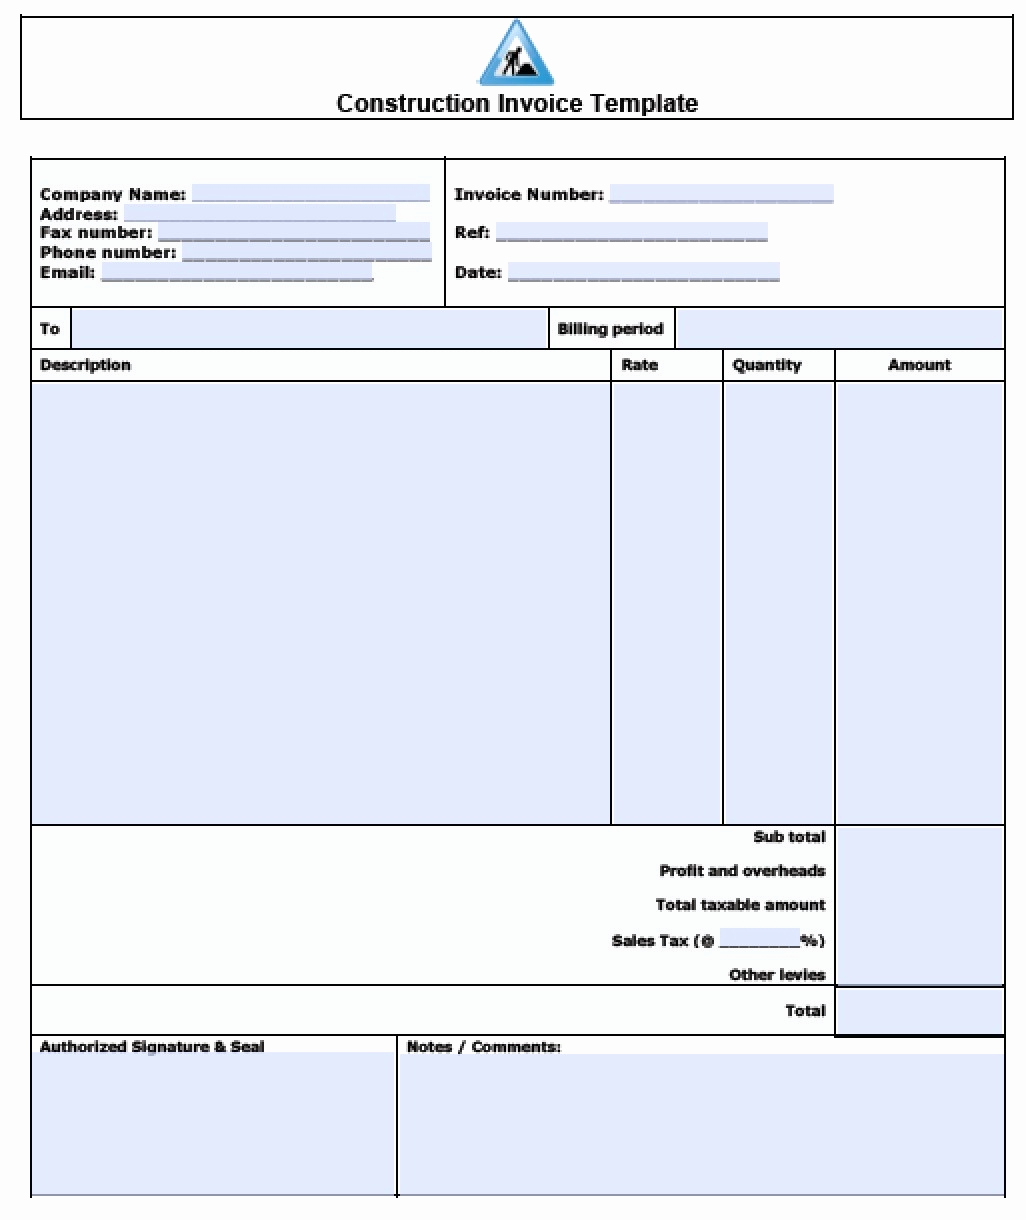 Labor Invoice Template Word Elegant General Labor Invoice Expense Spreadshee General Labor